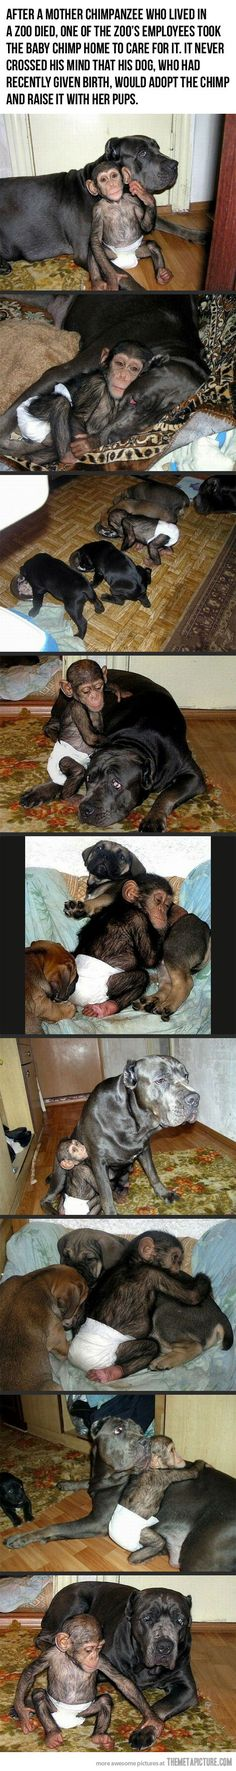 Love is love (double click on photo to view larger)...and I just died from cuteness overload